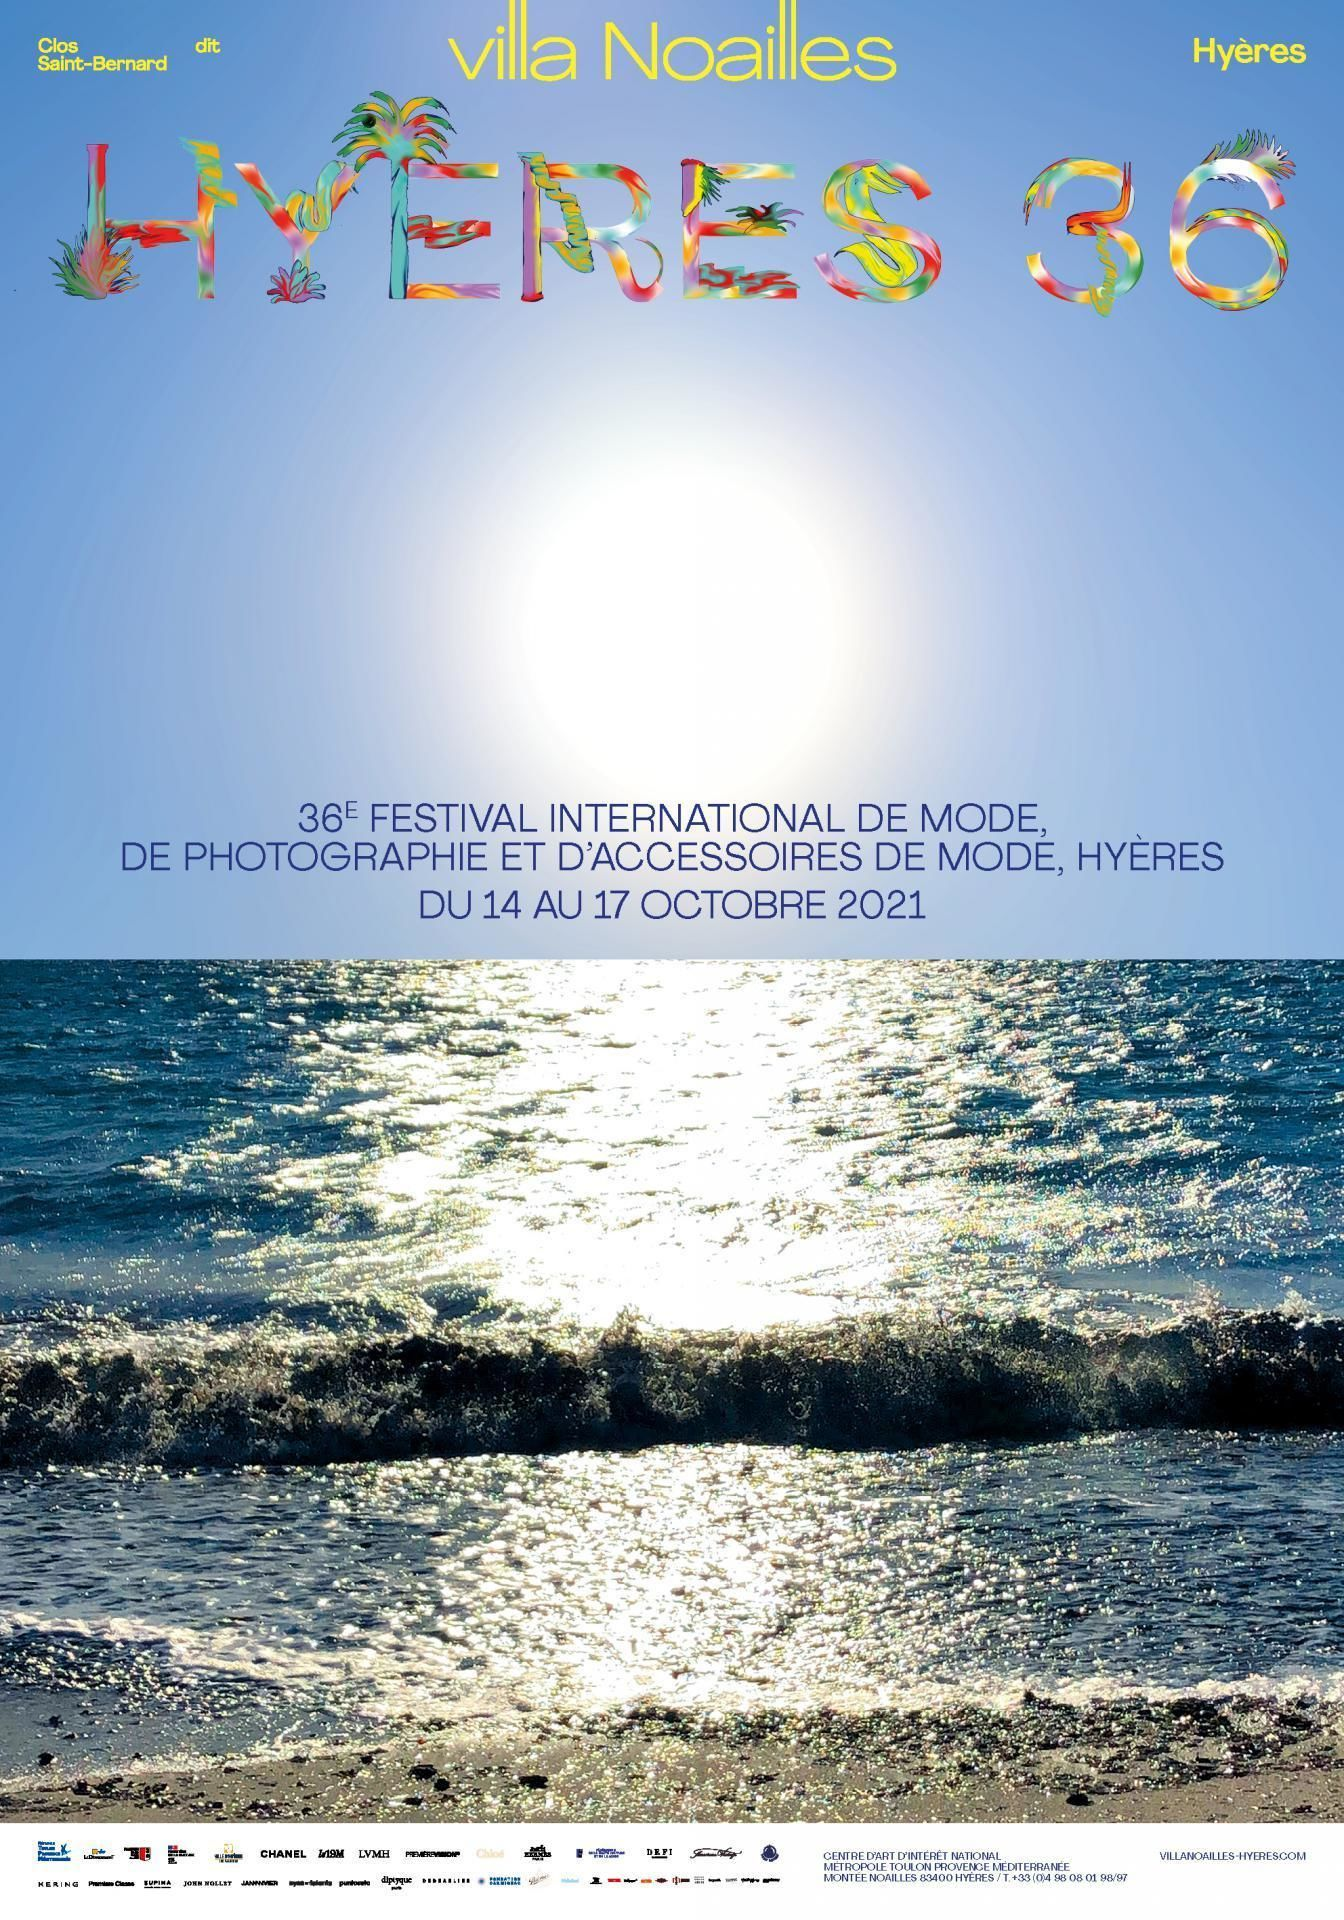 36th INTERNATIONAL FESTIVAL OF FASHION, PHOTOGRAPHY AND FASHION ACCESSOIRES, HYÈRES 2021